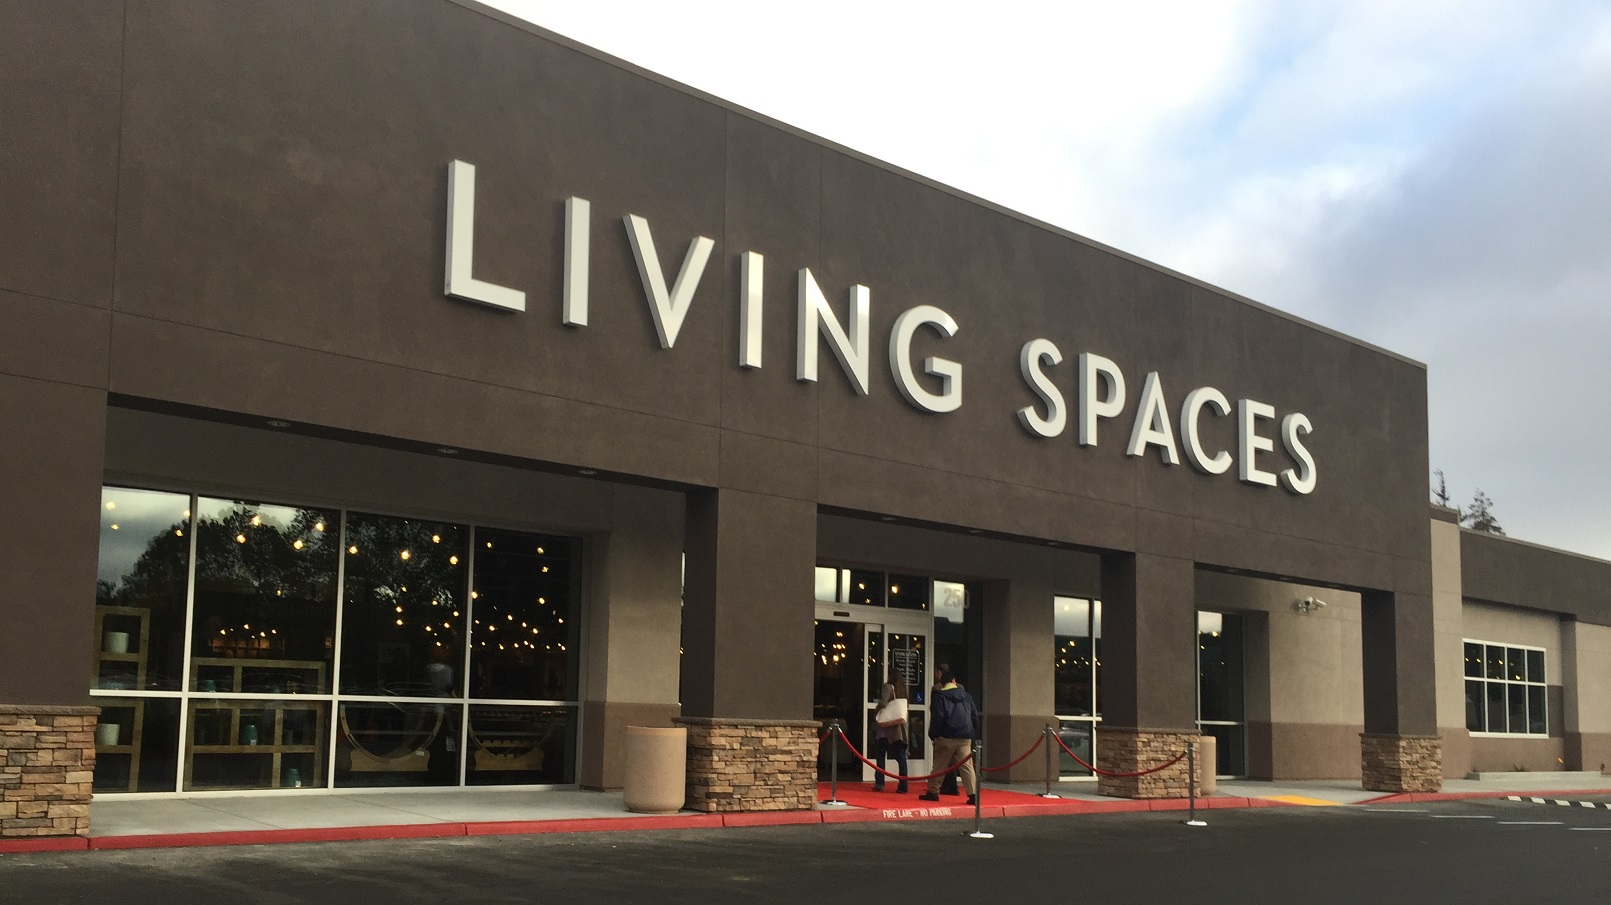 Living Spaces Offers Quality Furniture And Modern Home Décor In A Wide  Range Of Styles And Prices. The Showroom Is Expansive, Attractive, ...